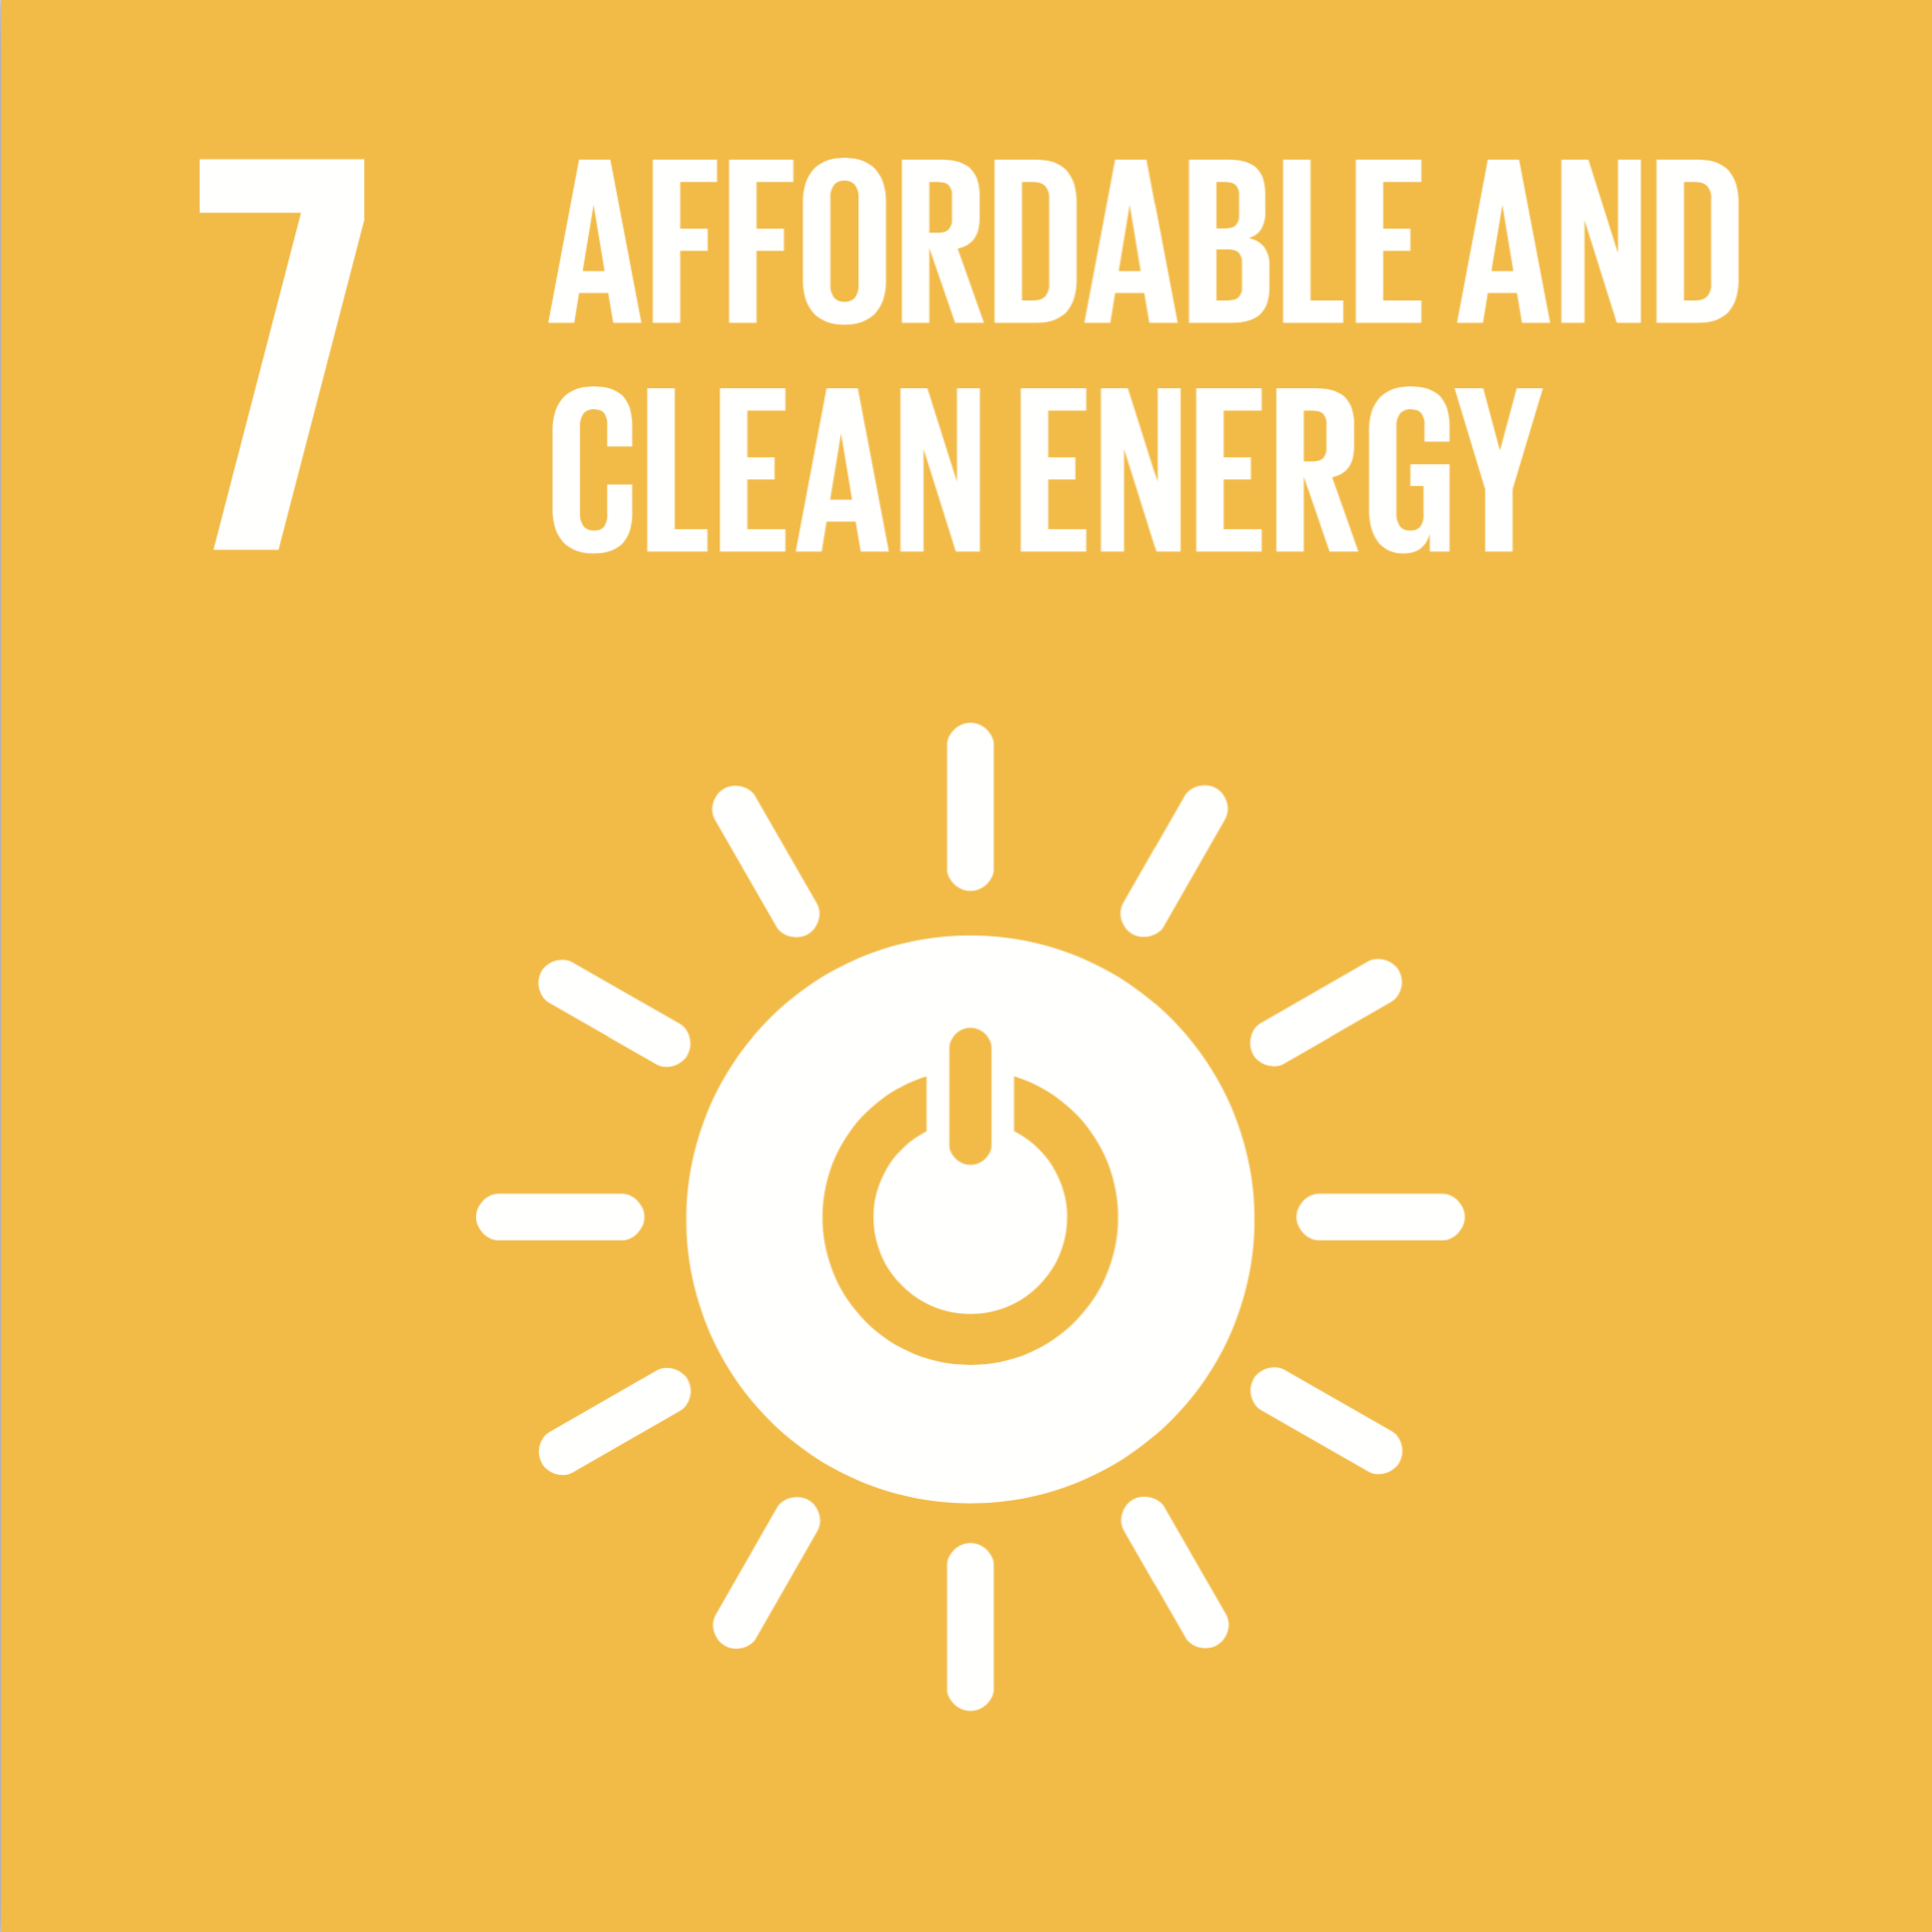 Sustainable Development Goal 7